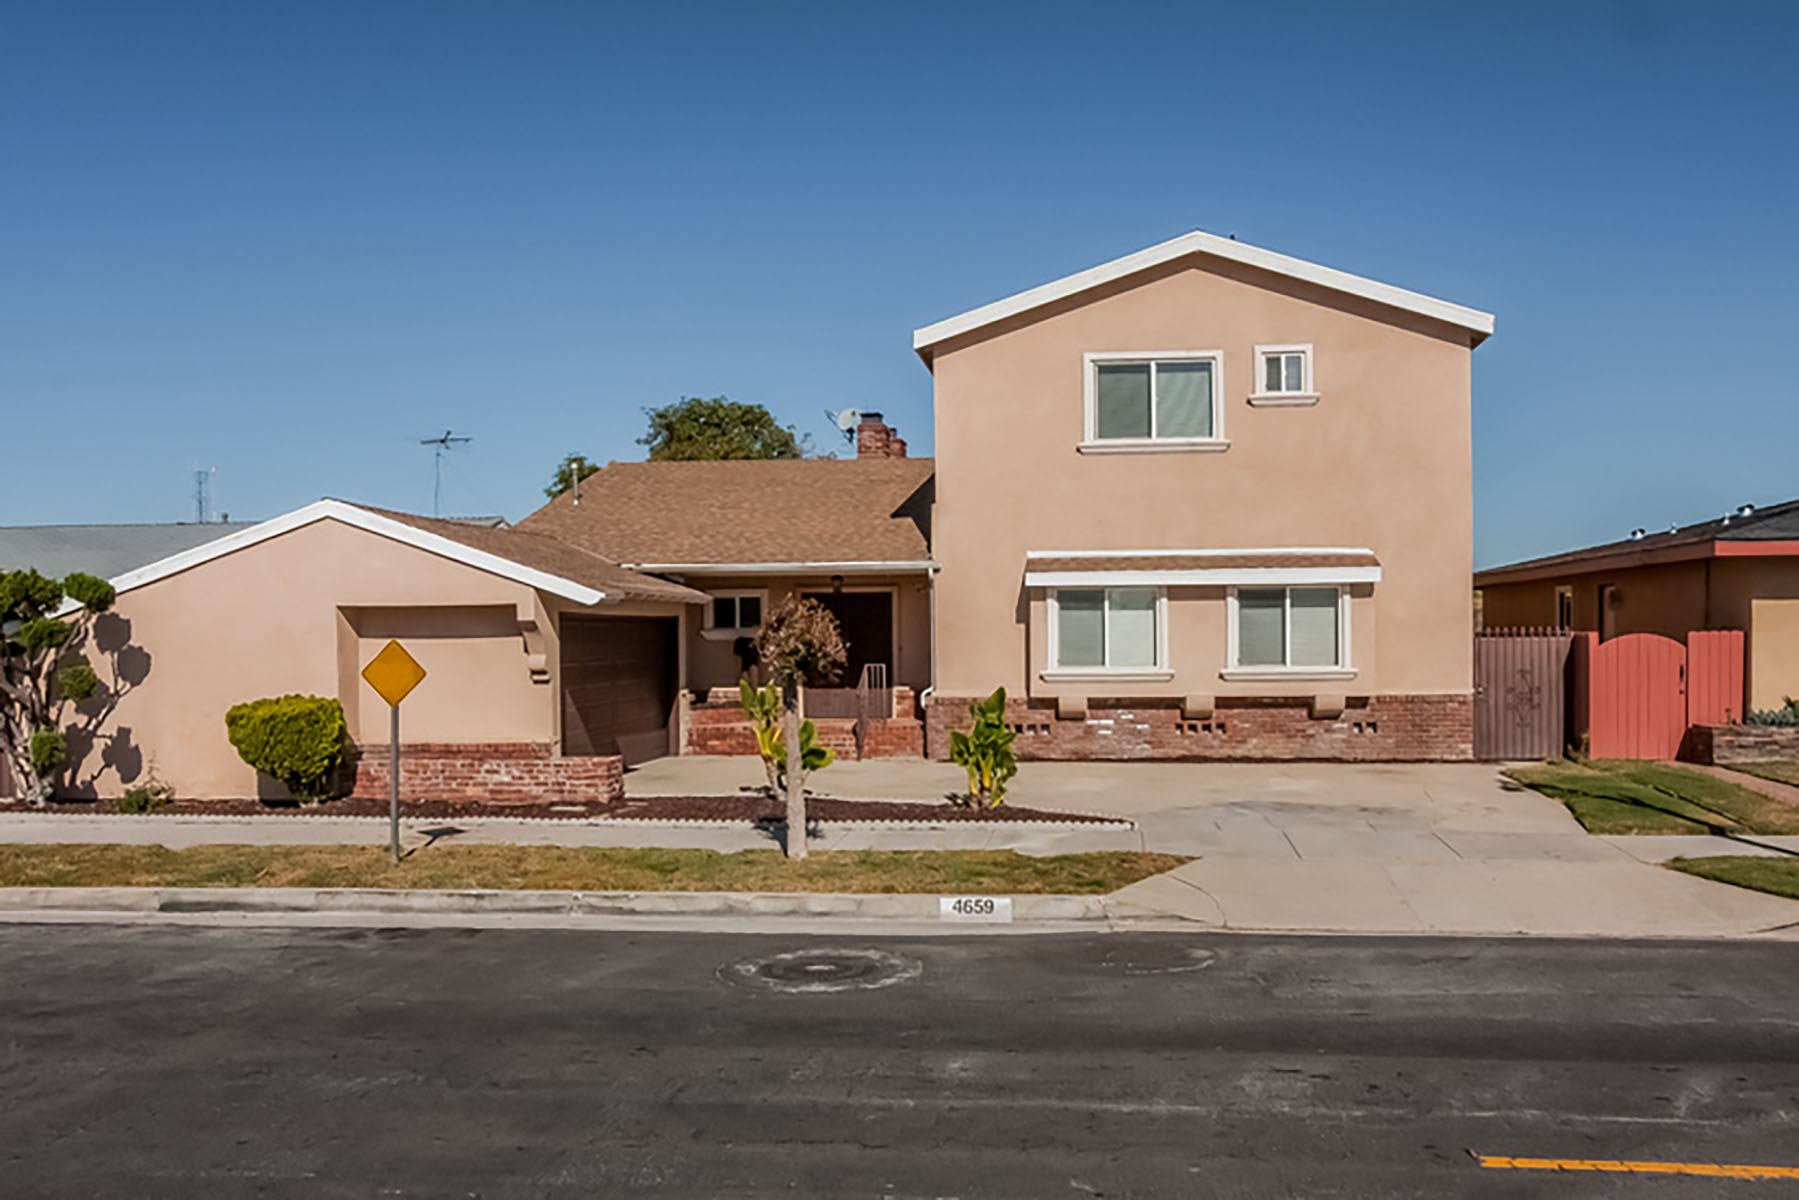 Single Family Home for Sale at 4659 Don Miguel Drive Baldwin Hills, Los Angeles, California 90008 United States